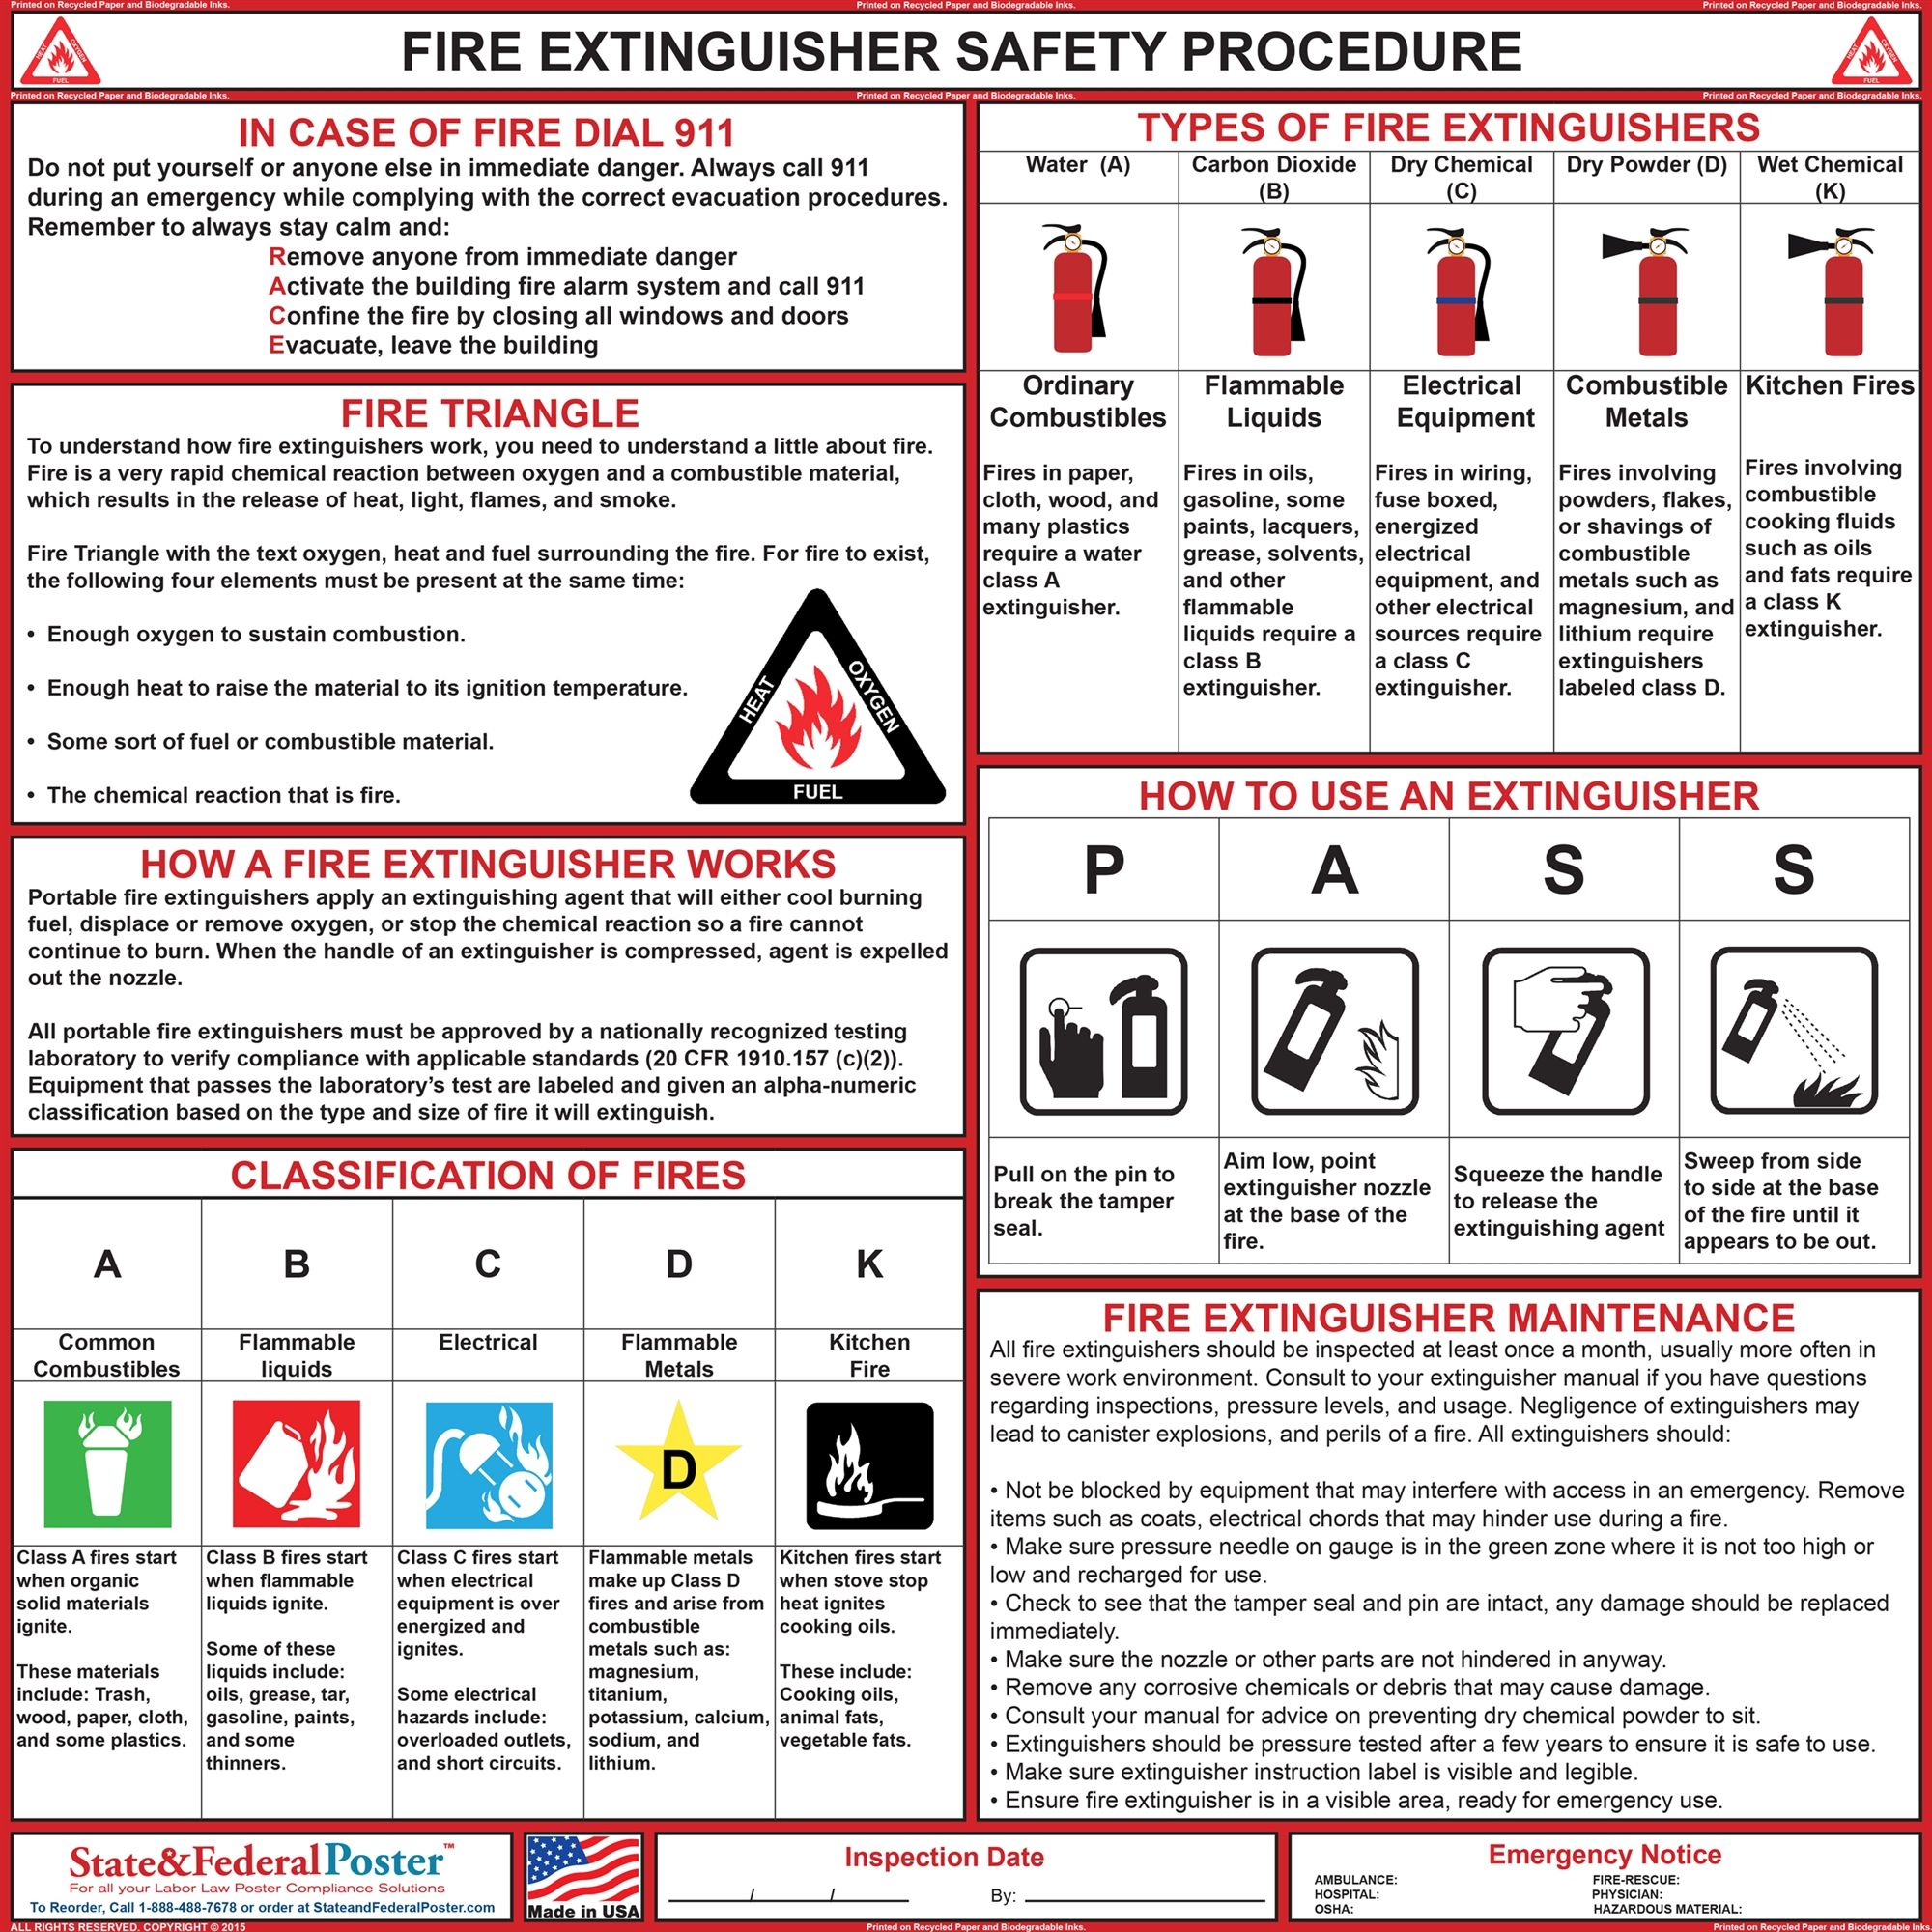 Pin by State and Federal Poster™ on Quality & Safety